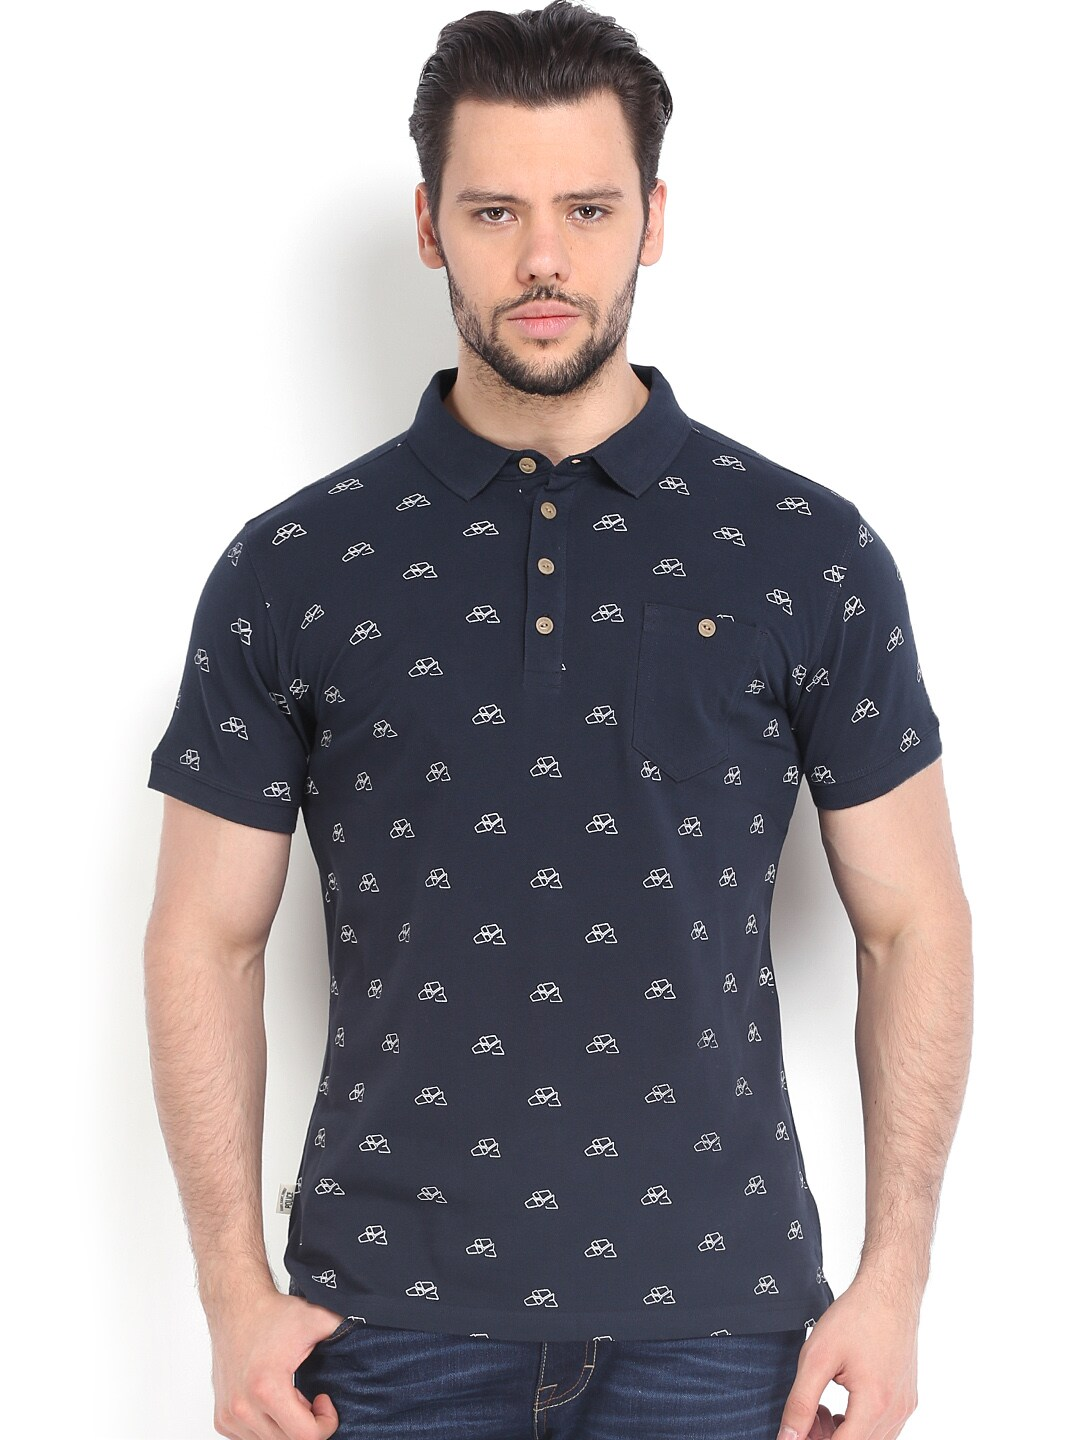 Police 884 Police Men Navy Printed Polo T-Shirt (Multicolor)